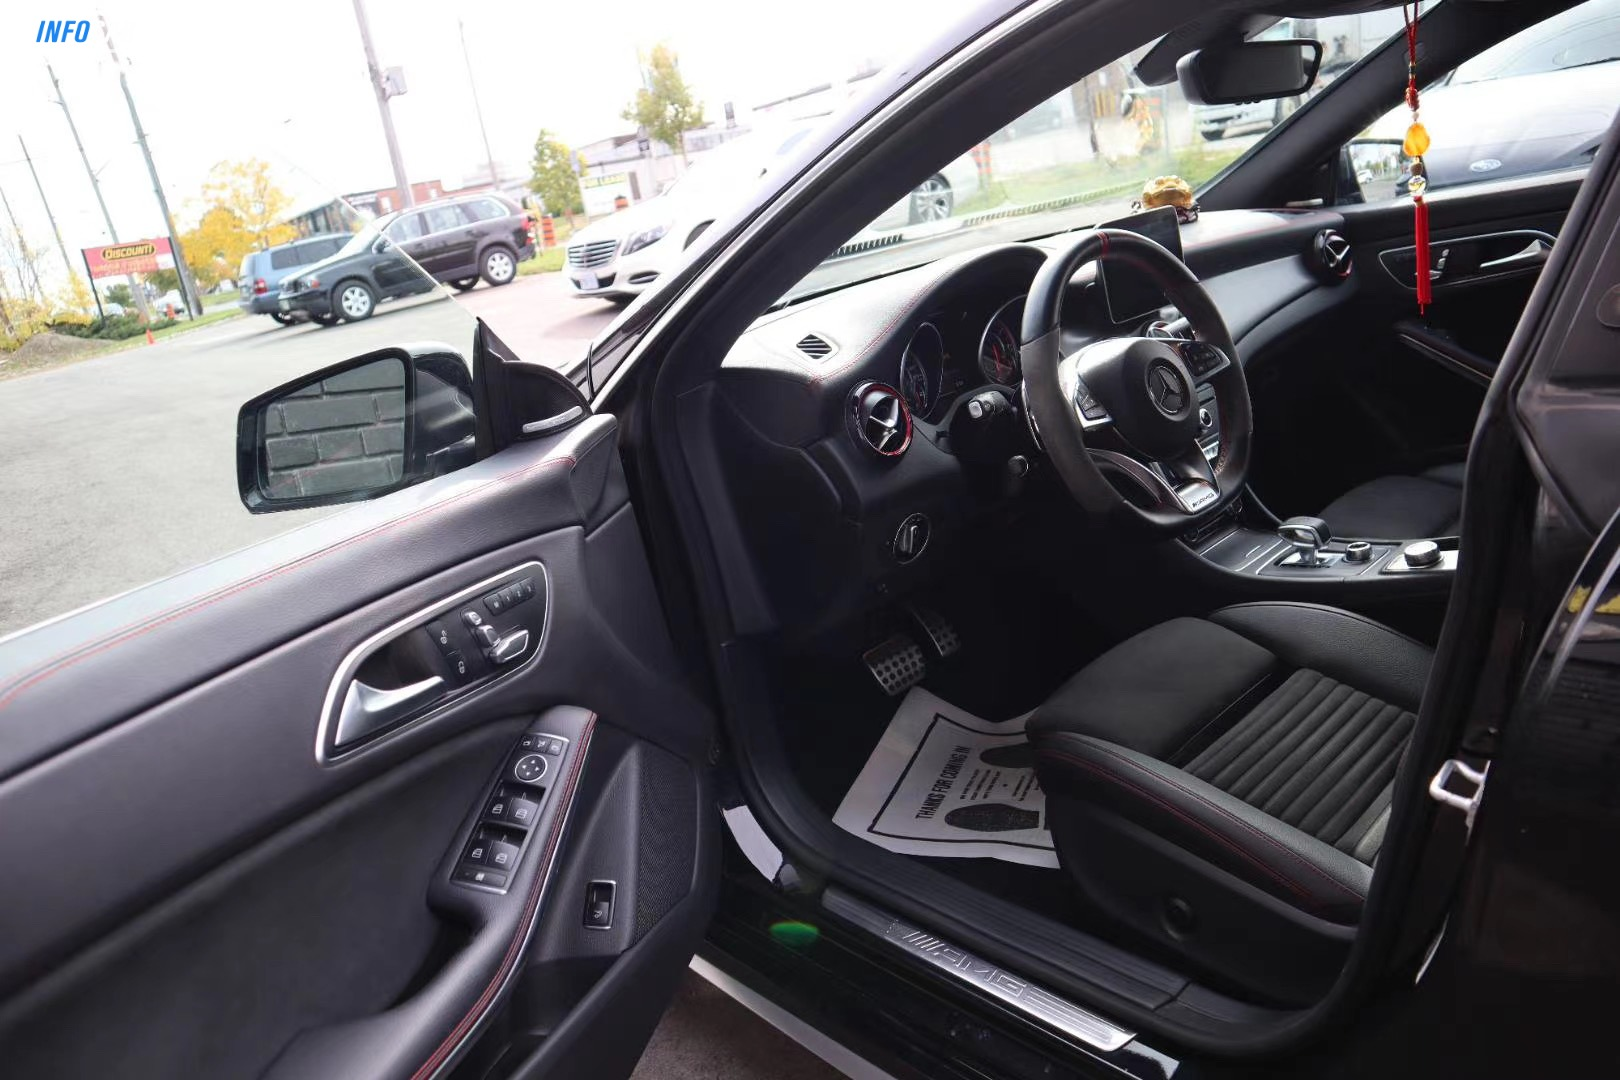 2018 Mercedes-Benz CLA-Class 45 - INFOCAR - Toronto's Most Comprehensive New and Used Auto Trading Platform